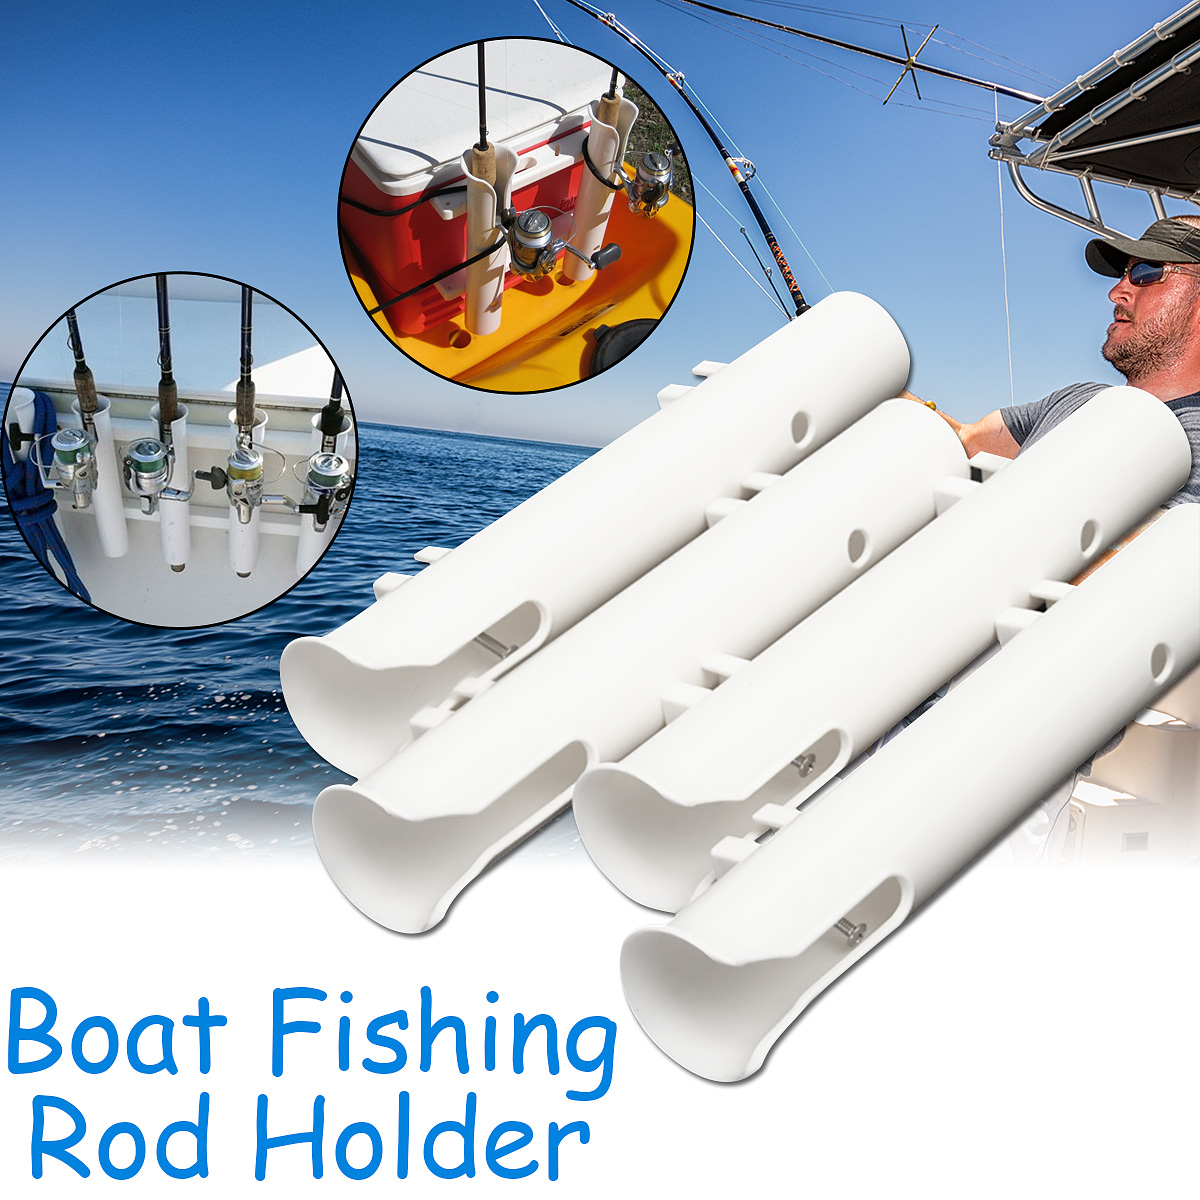 Bobing 4Pcs/lot Plastic 1 Tube Boat Fishing Rod Holders Marine Fish Rod Pole Stand Support Holder Outdoor Fishing Tools